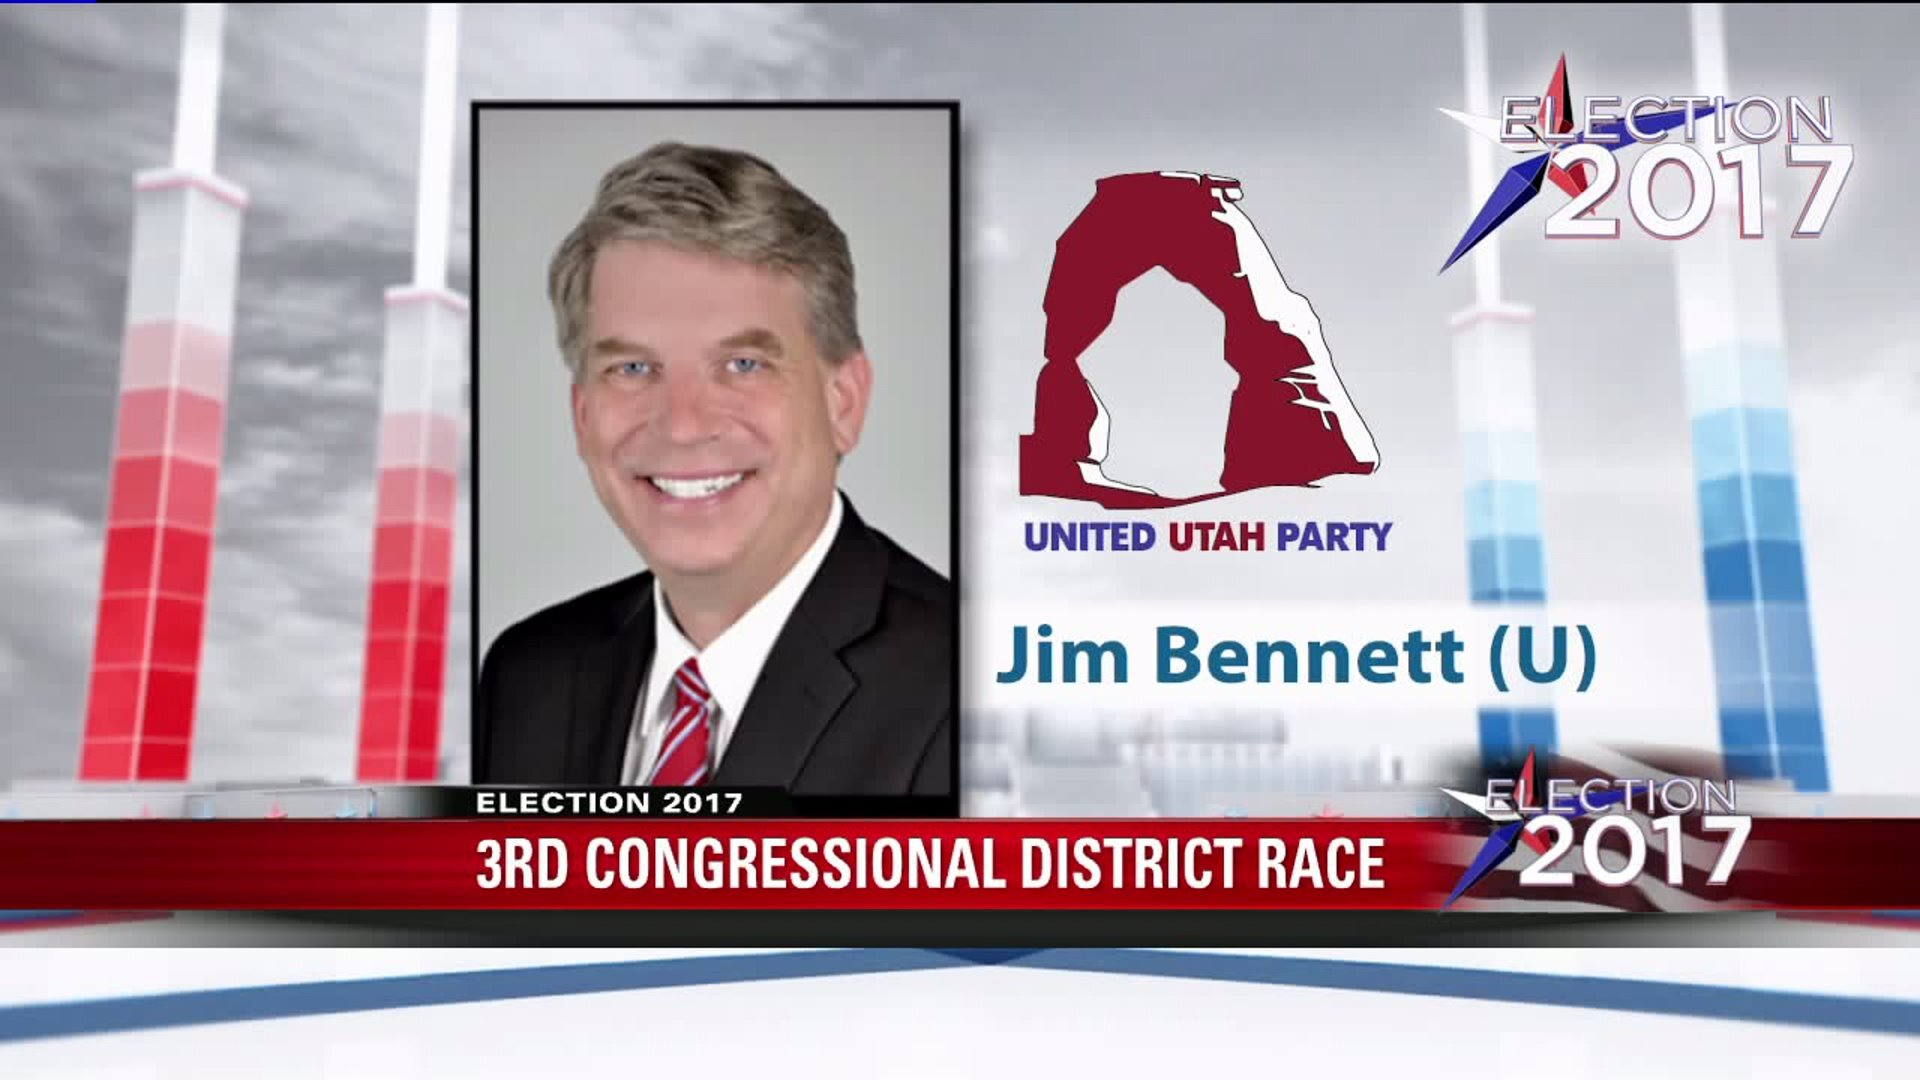 Photos: Election Day: All eyes on Utah's Third CongressionalDistrict